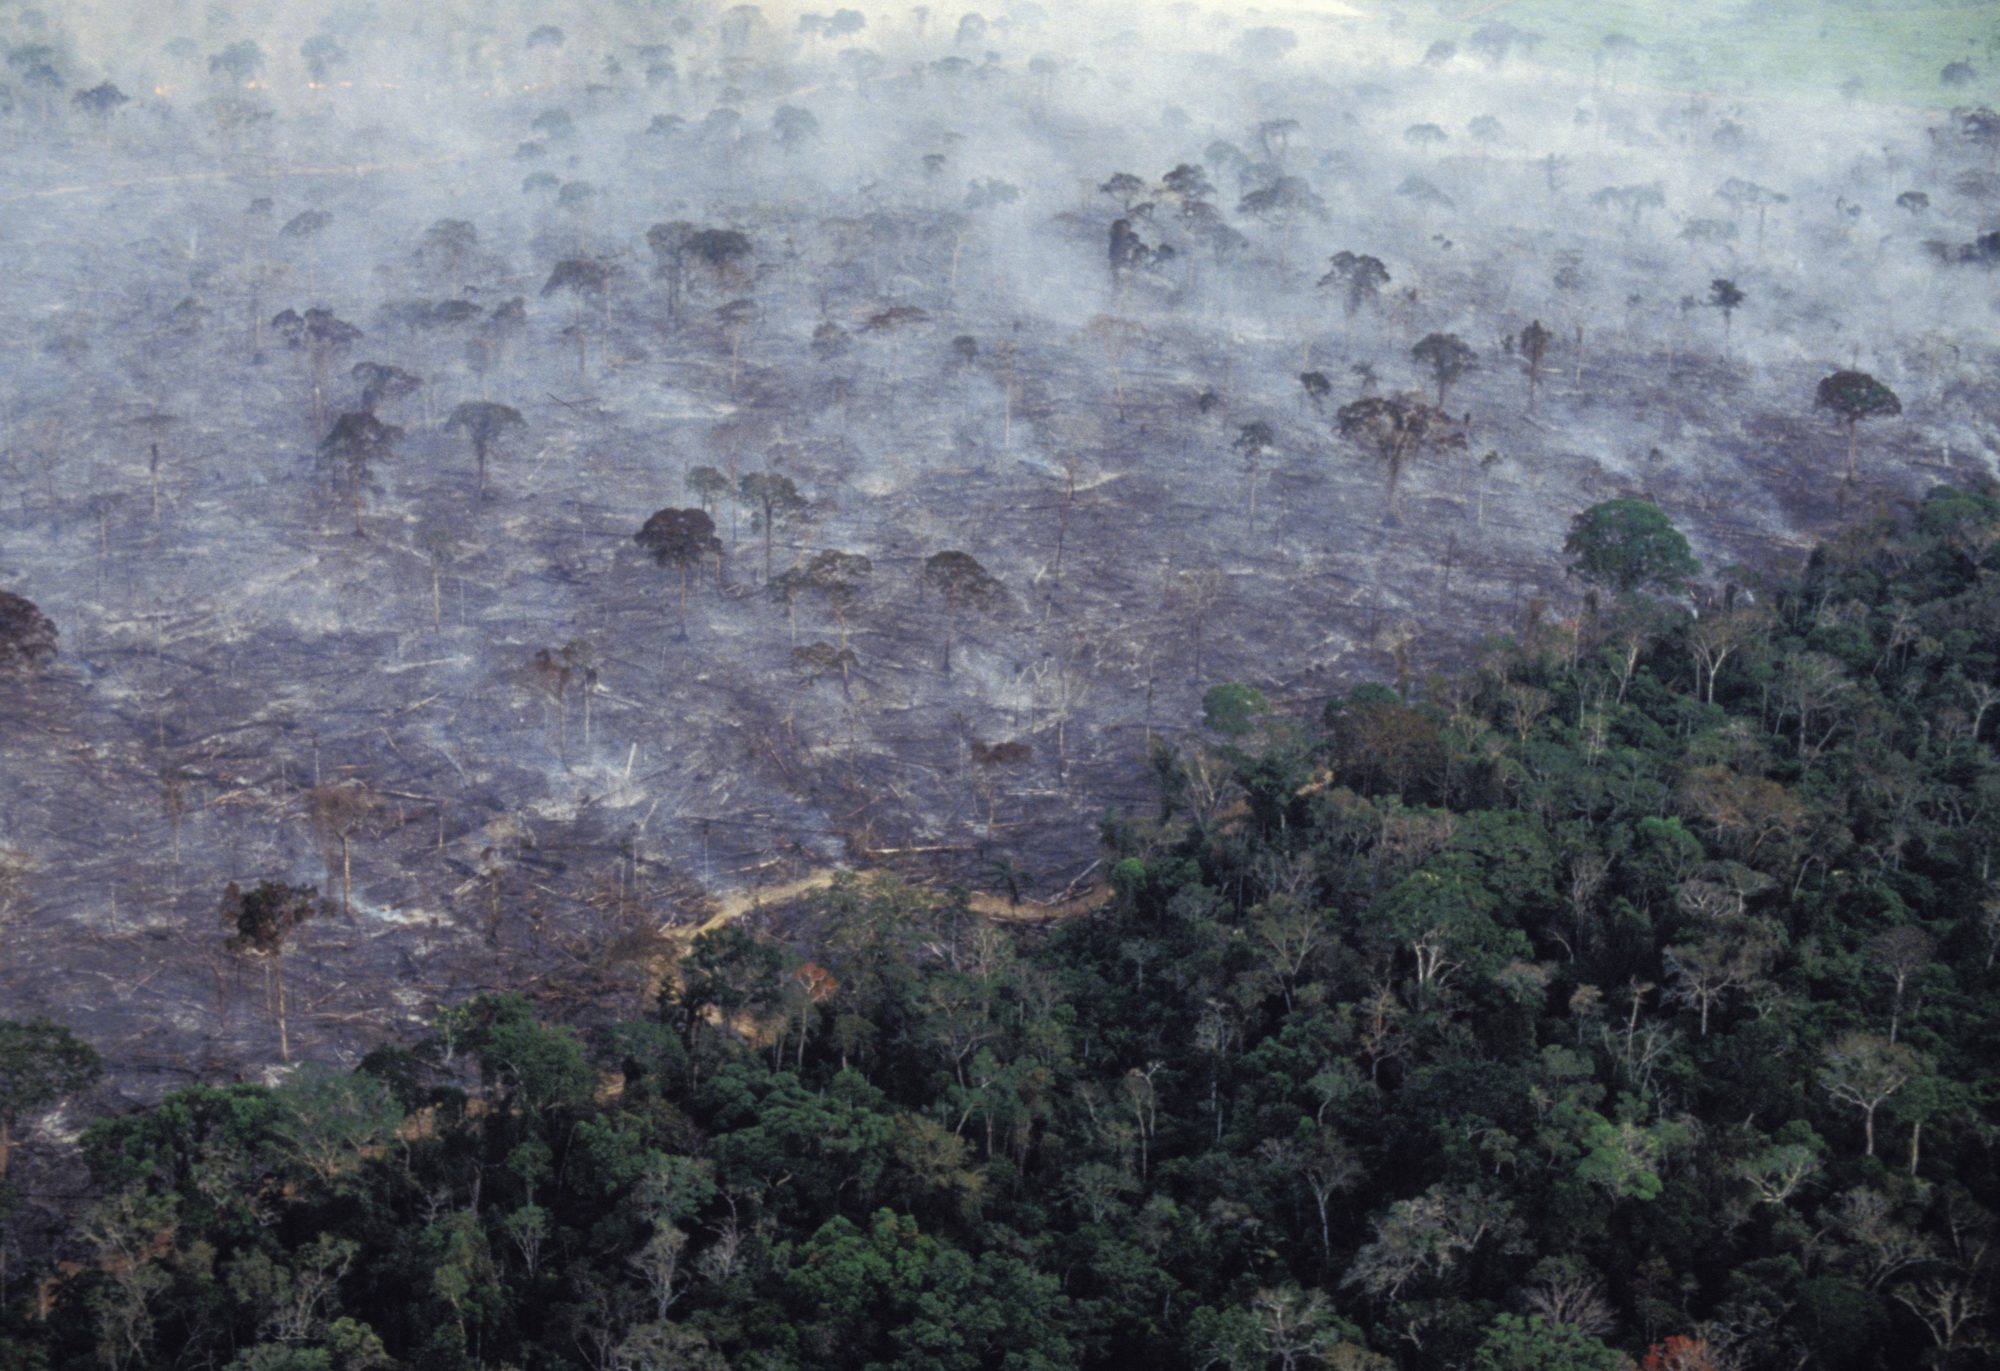 Aerial view of Amazon rainforest burning, farm management